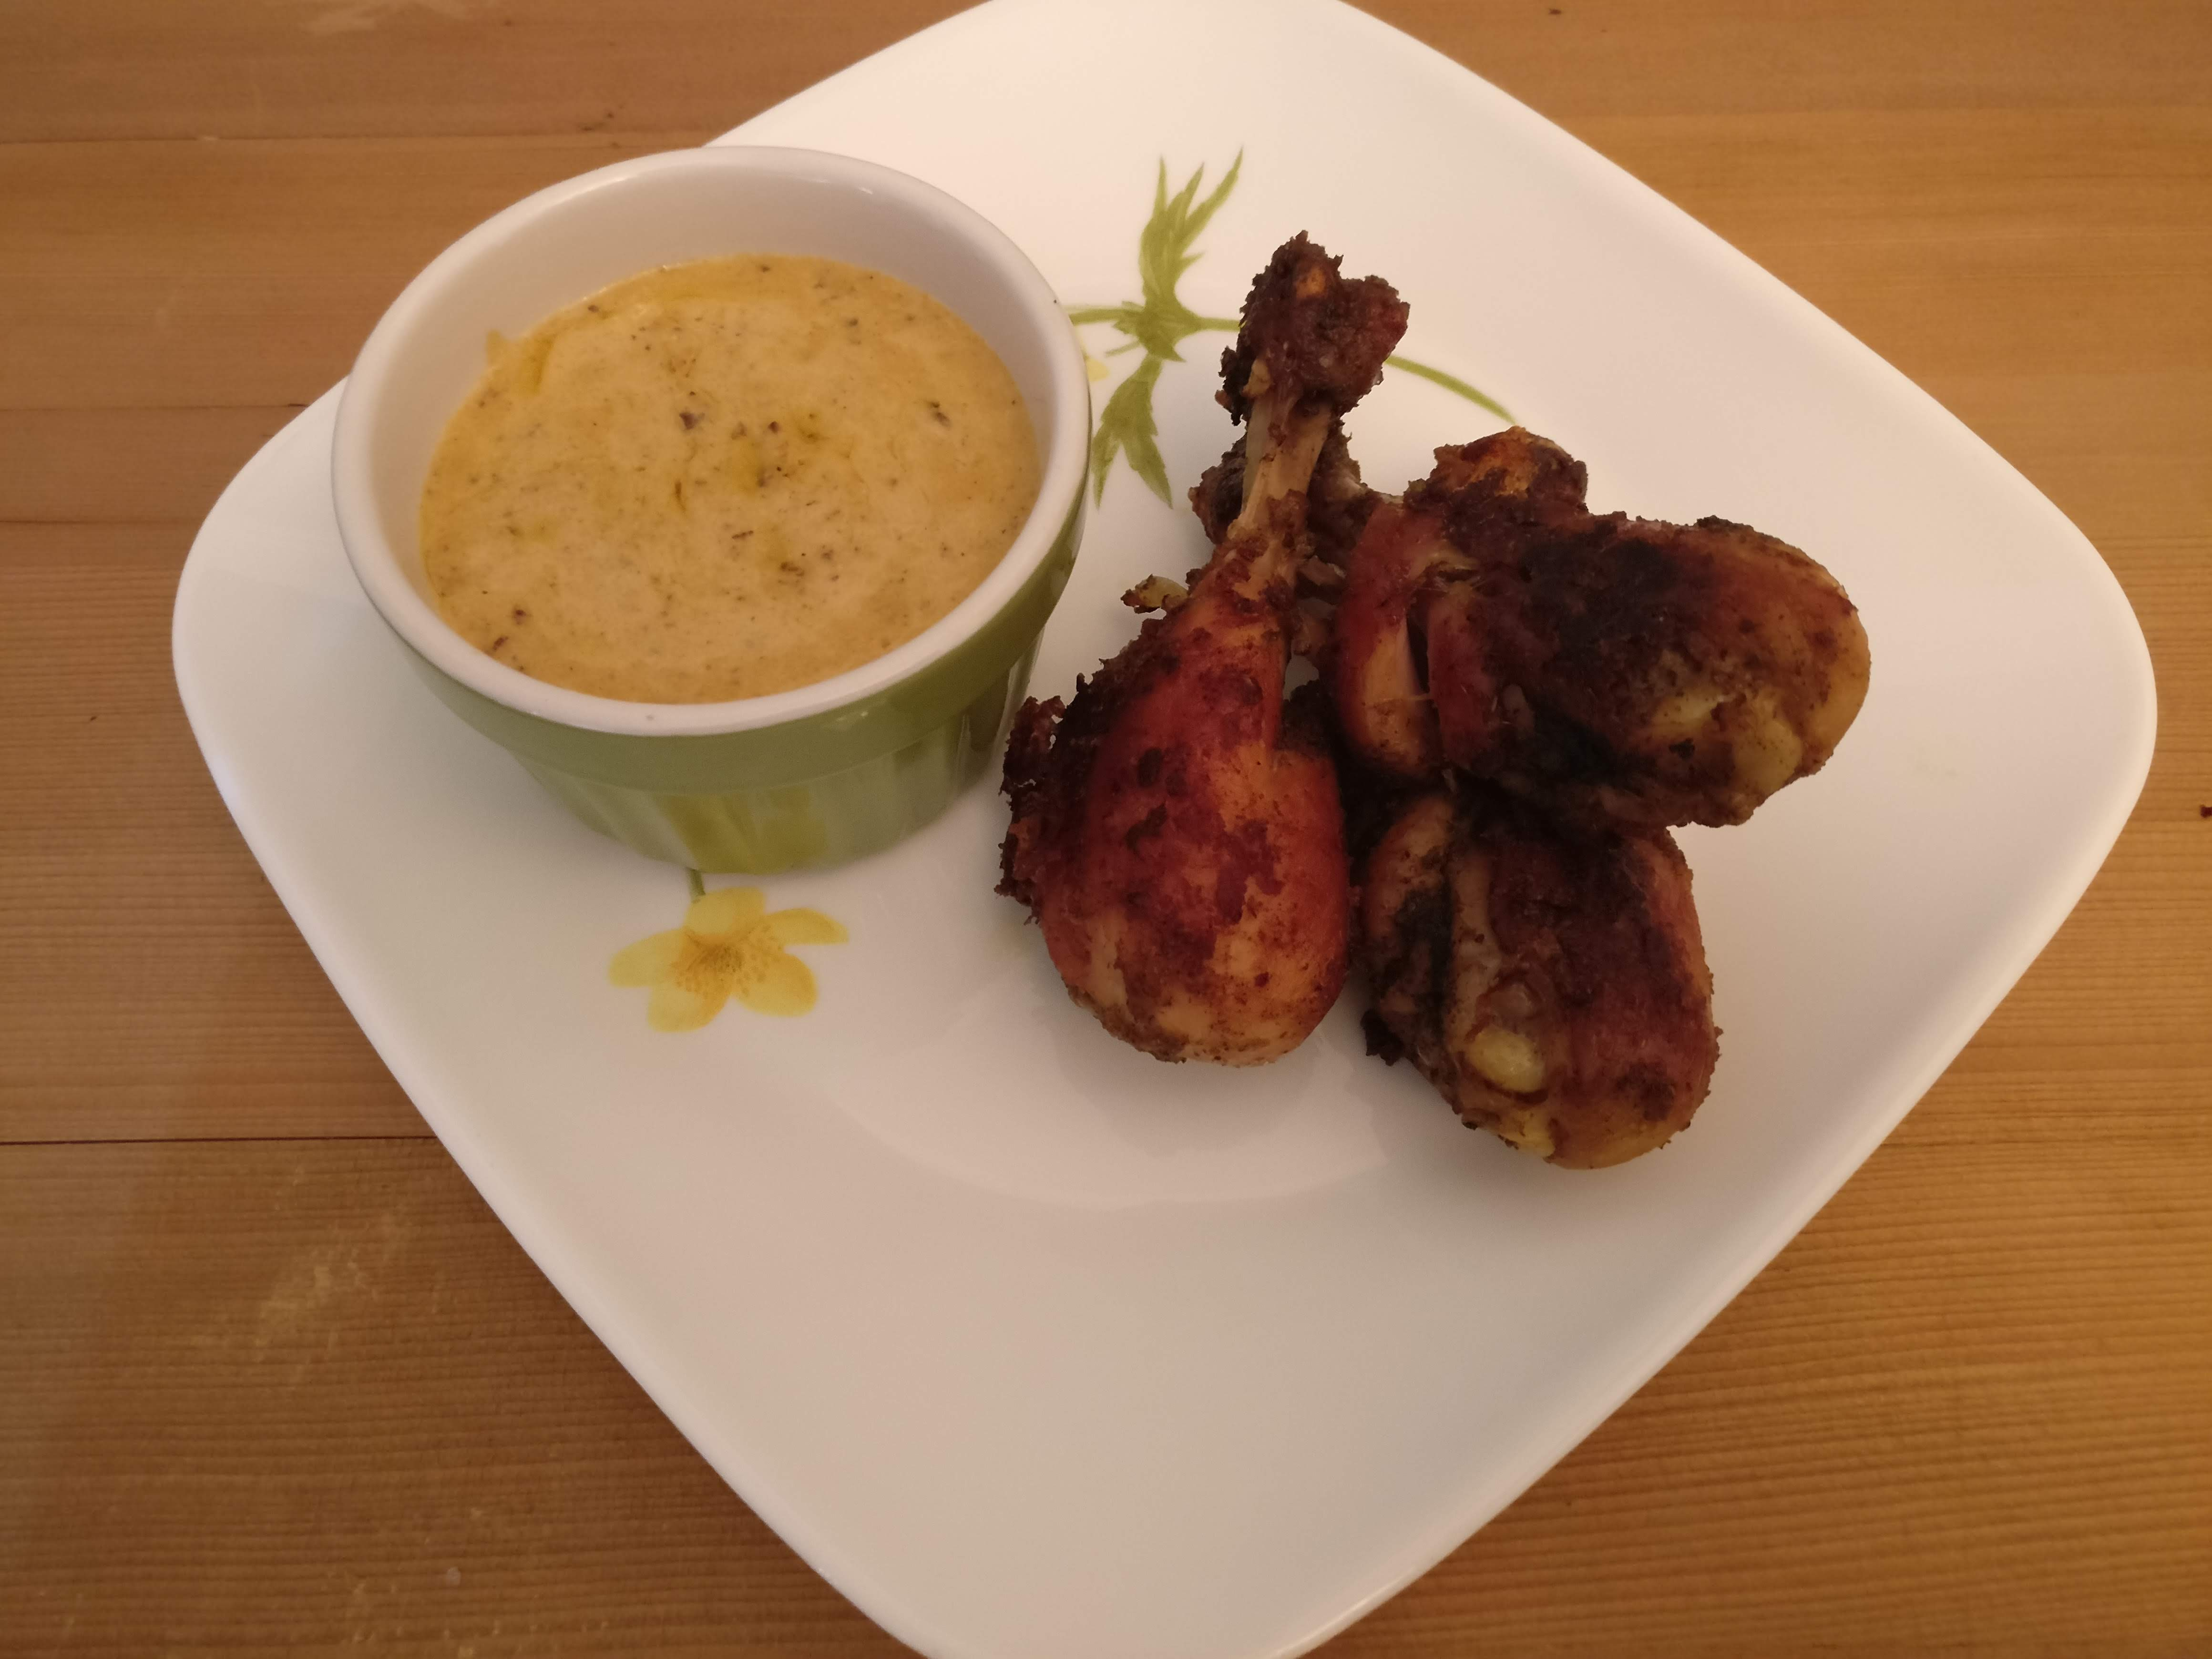 Chicken Drumsticks with Garlic Cheese Sauce